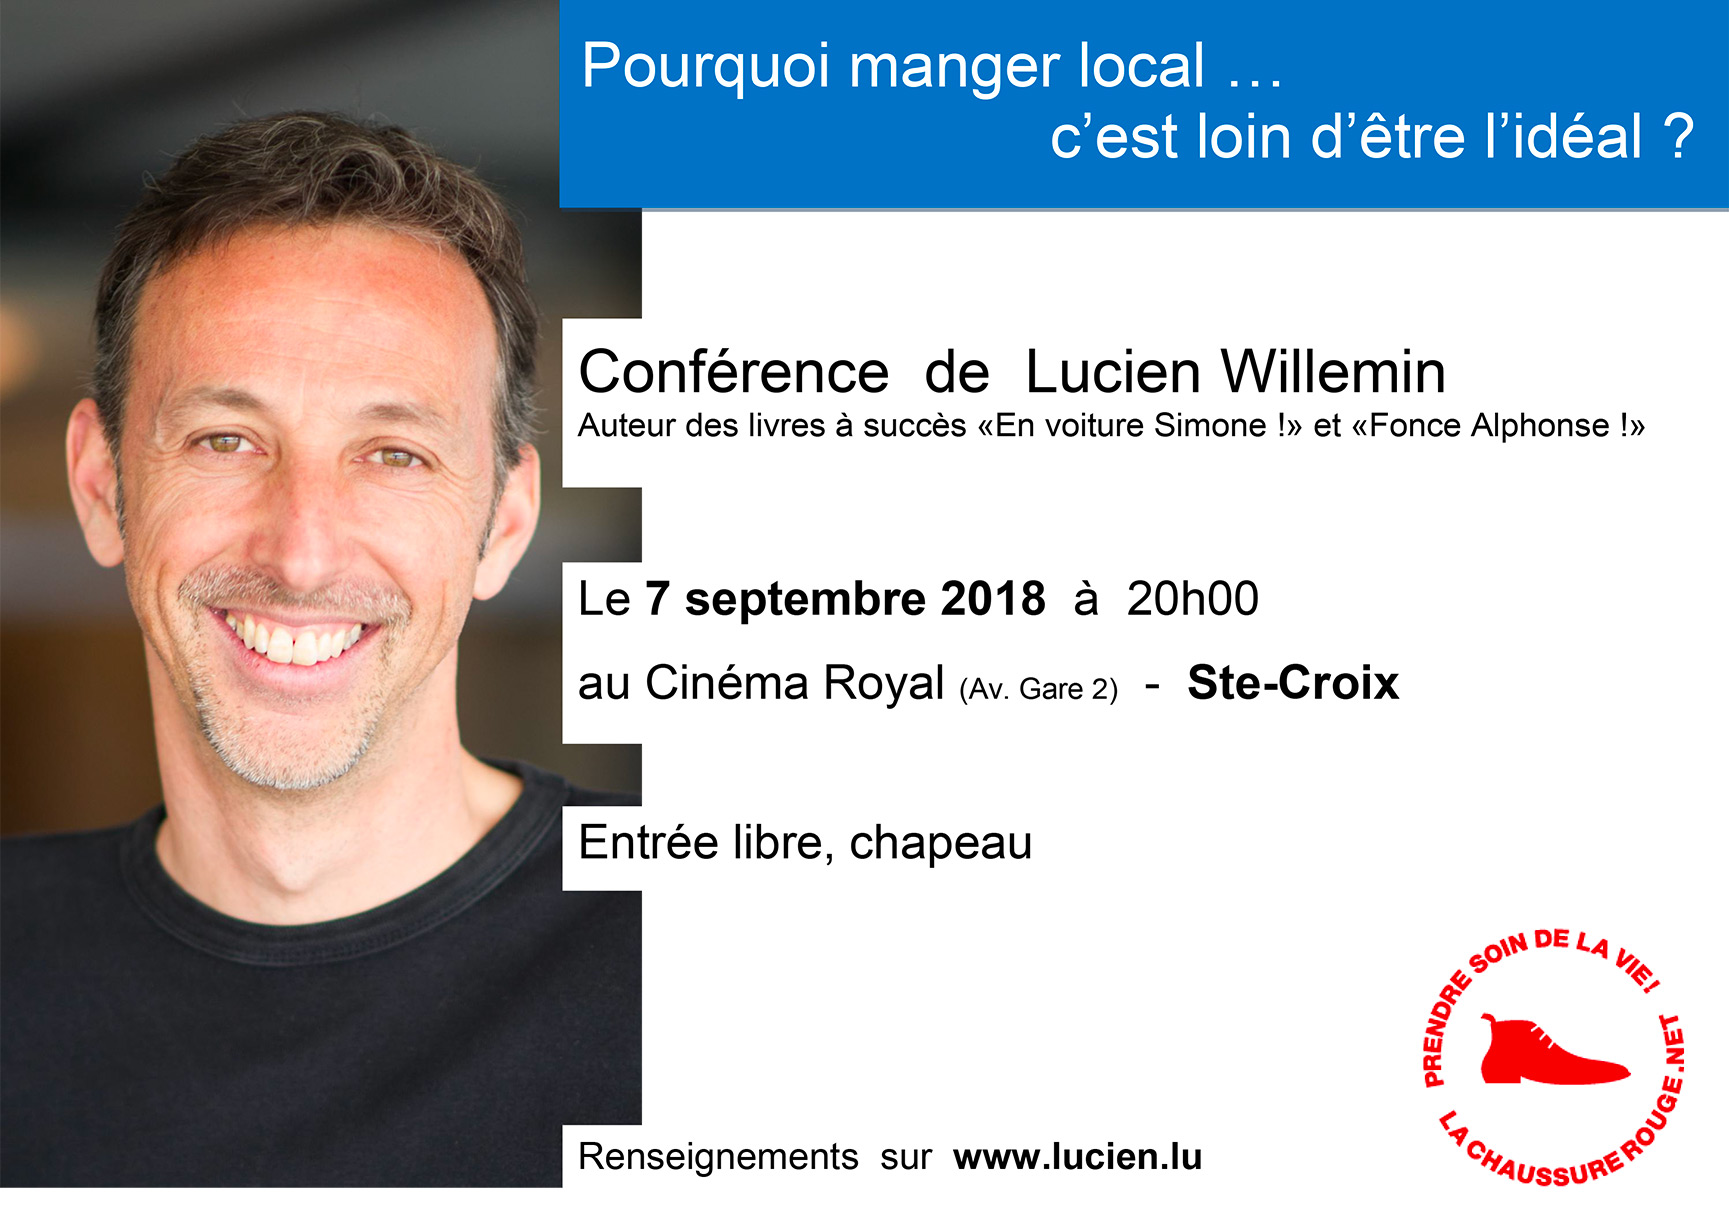 ConferenceLucienWillemin1